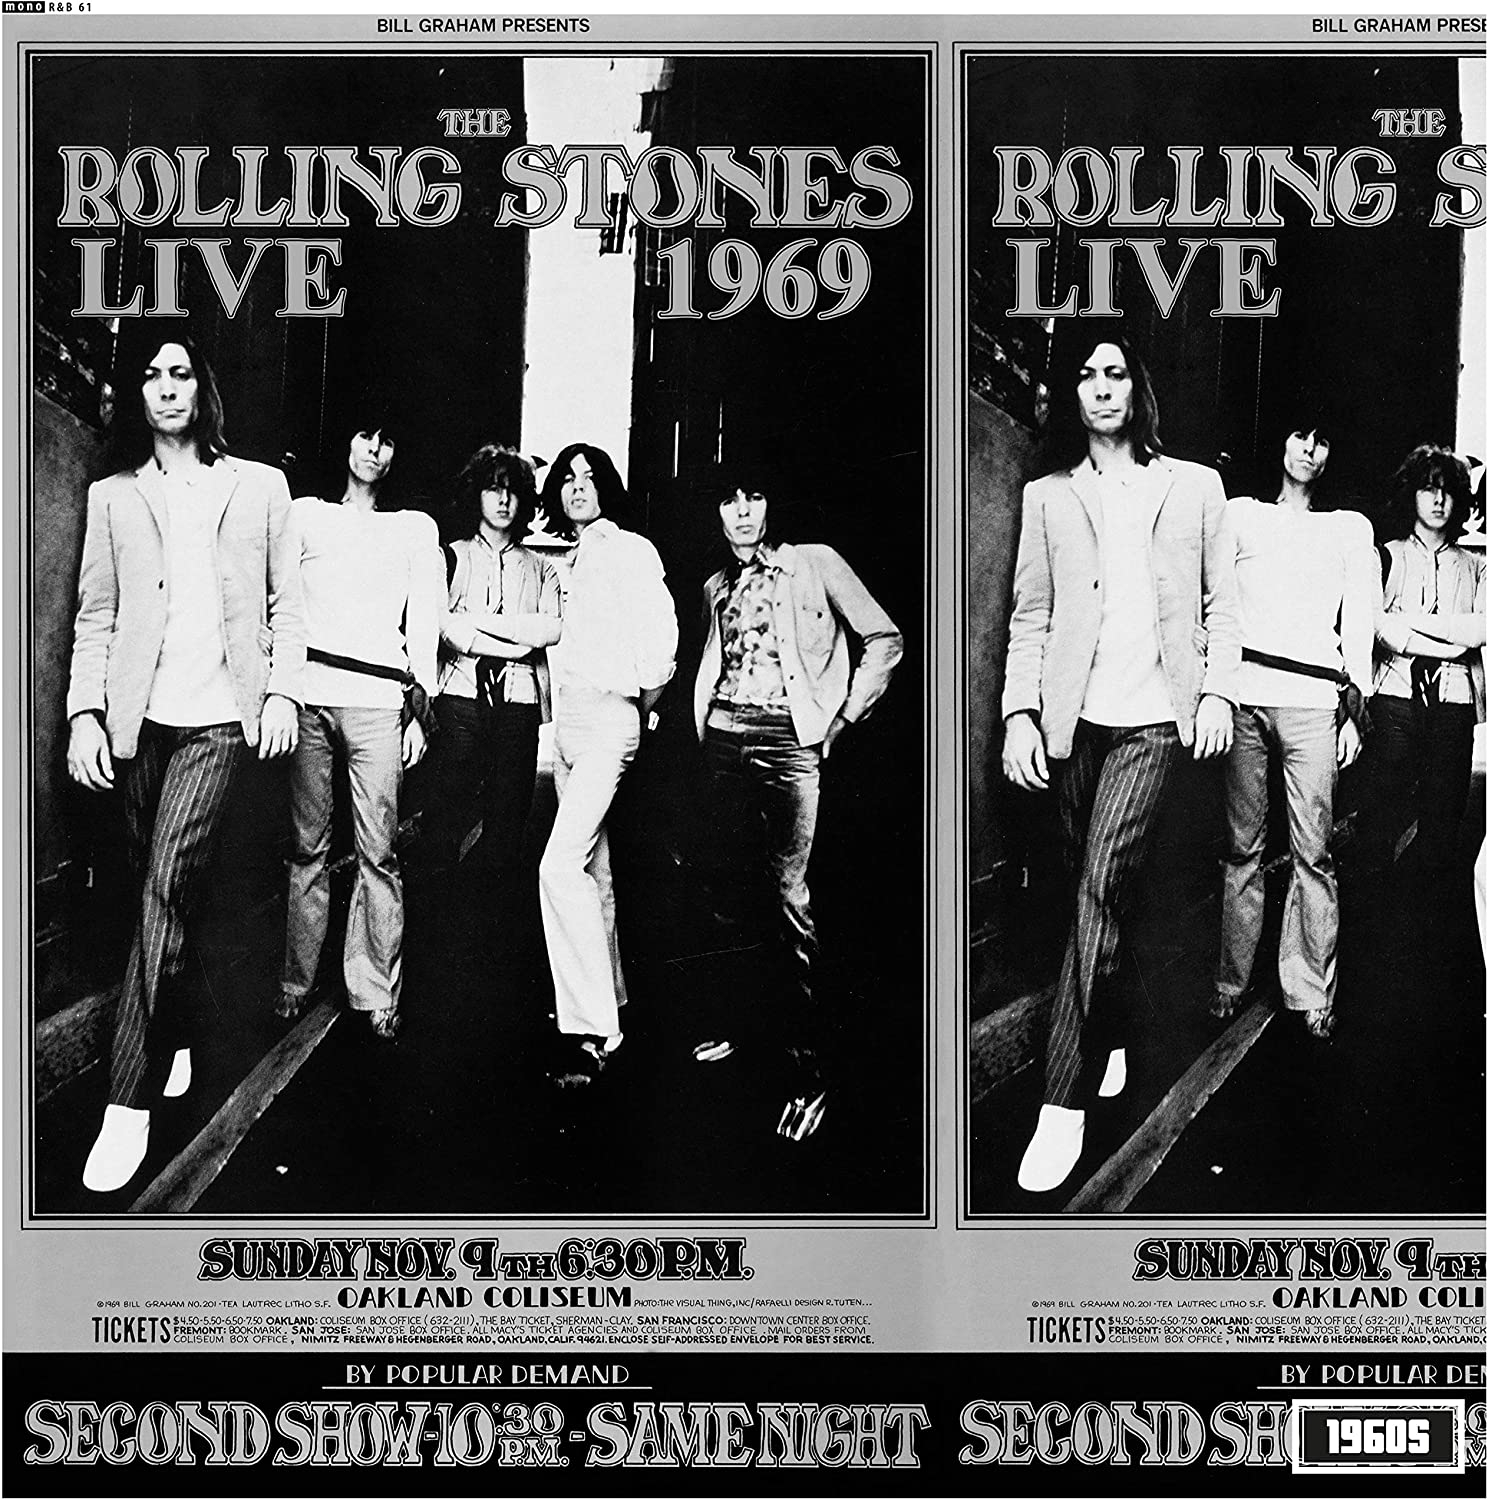 Live At The Oakland Coliseum 1969 (Vinyl)